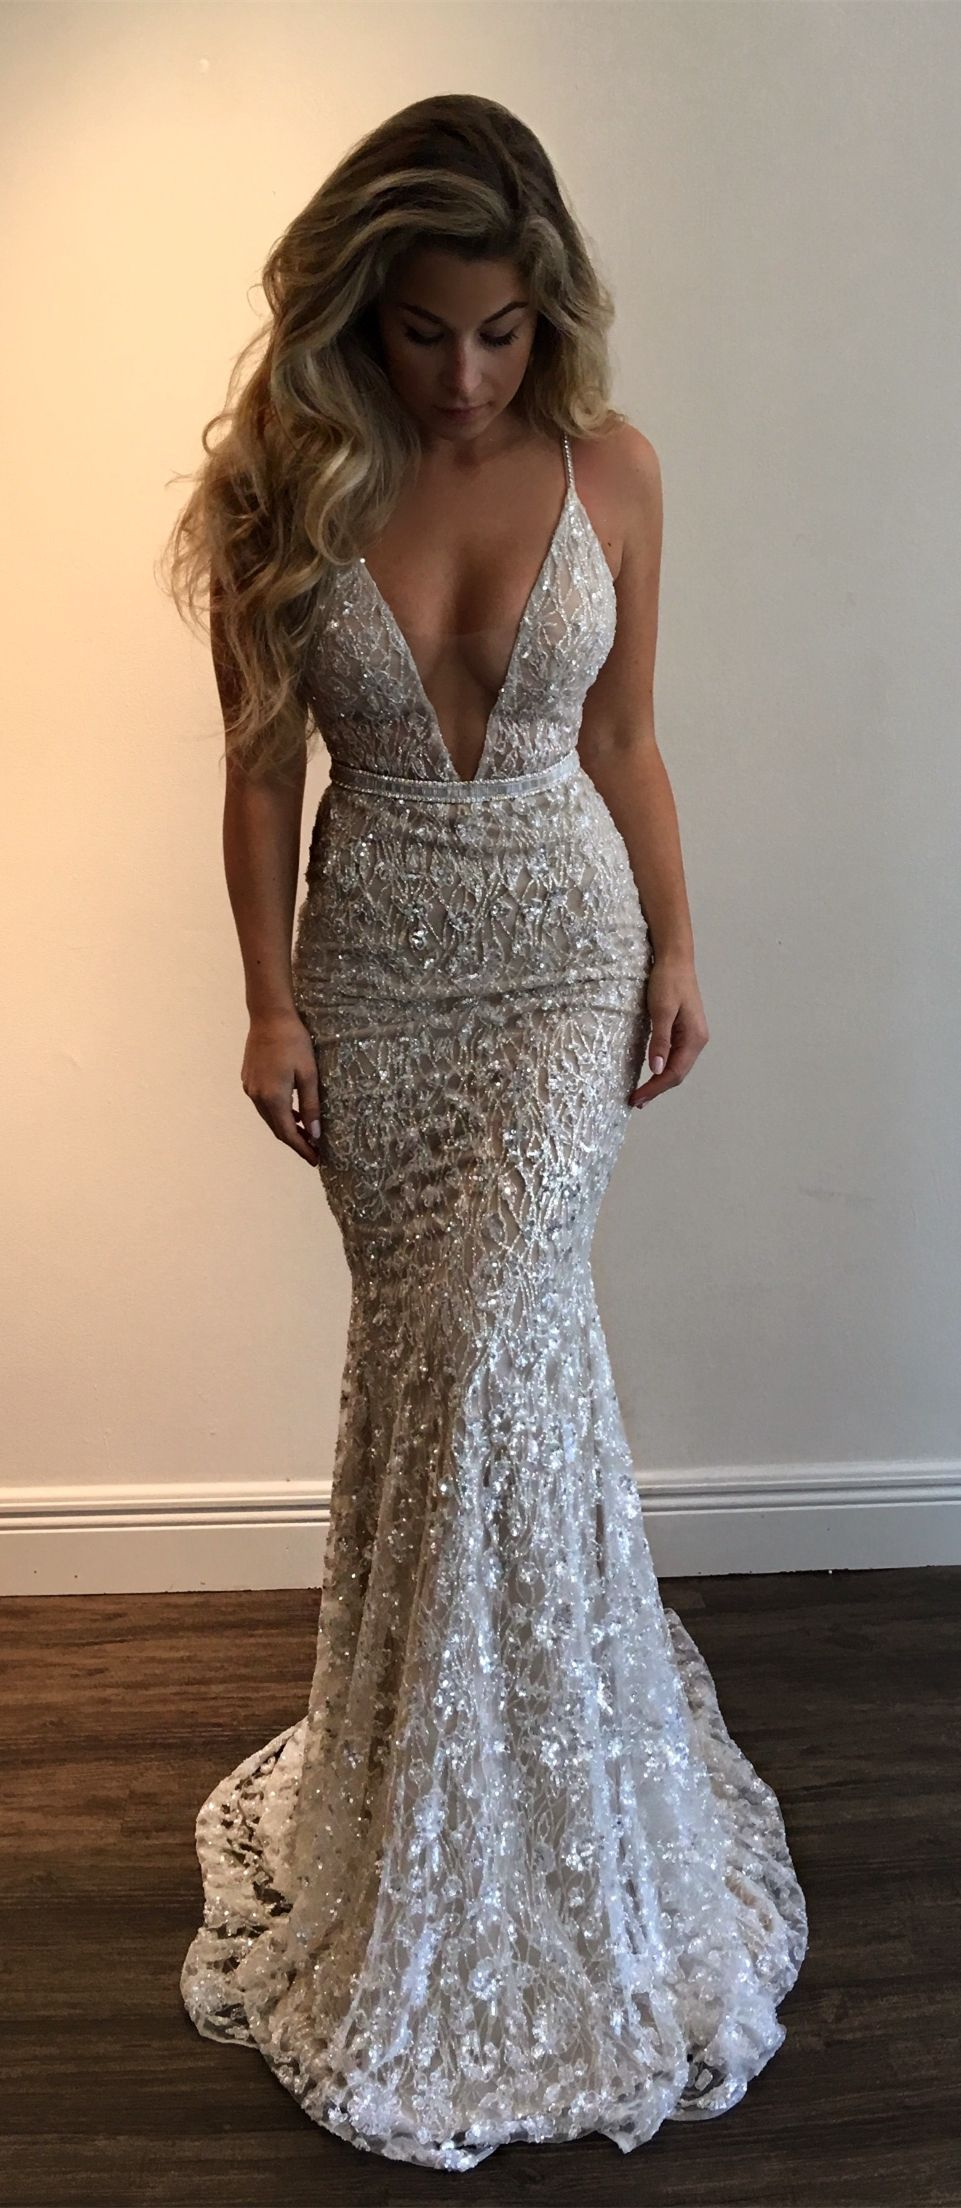 7483f0a815b03 Mermaid Deep V-Neck Sweep Train Silver Lace Prom Dress with Sequins